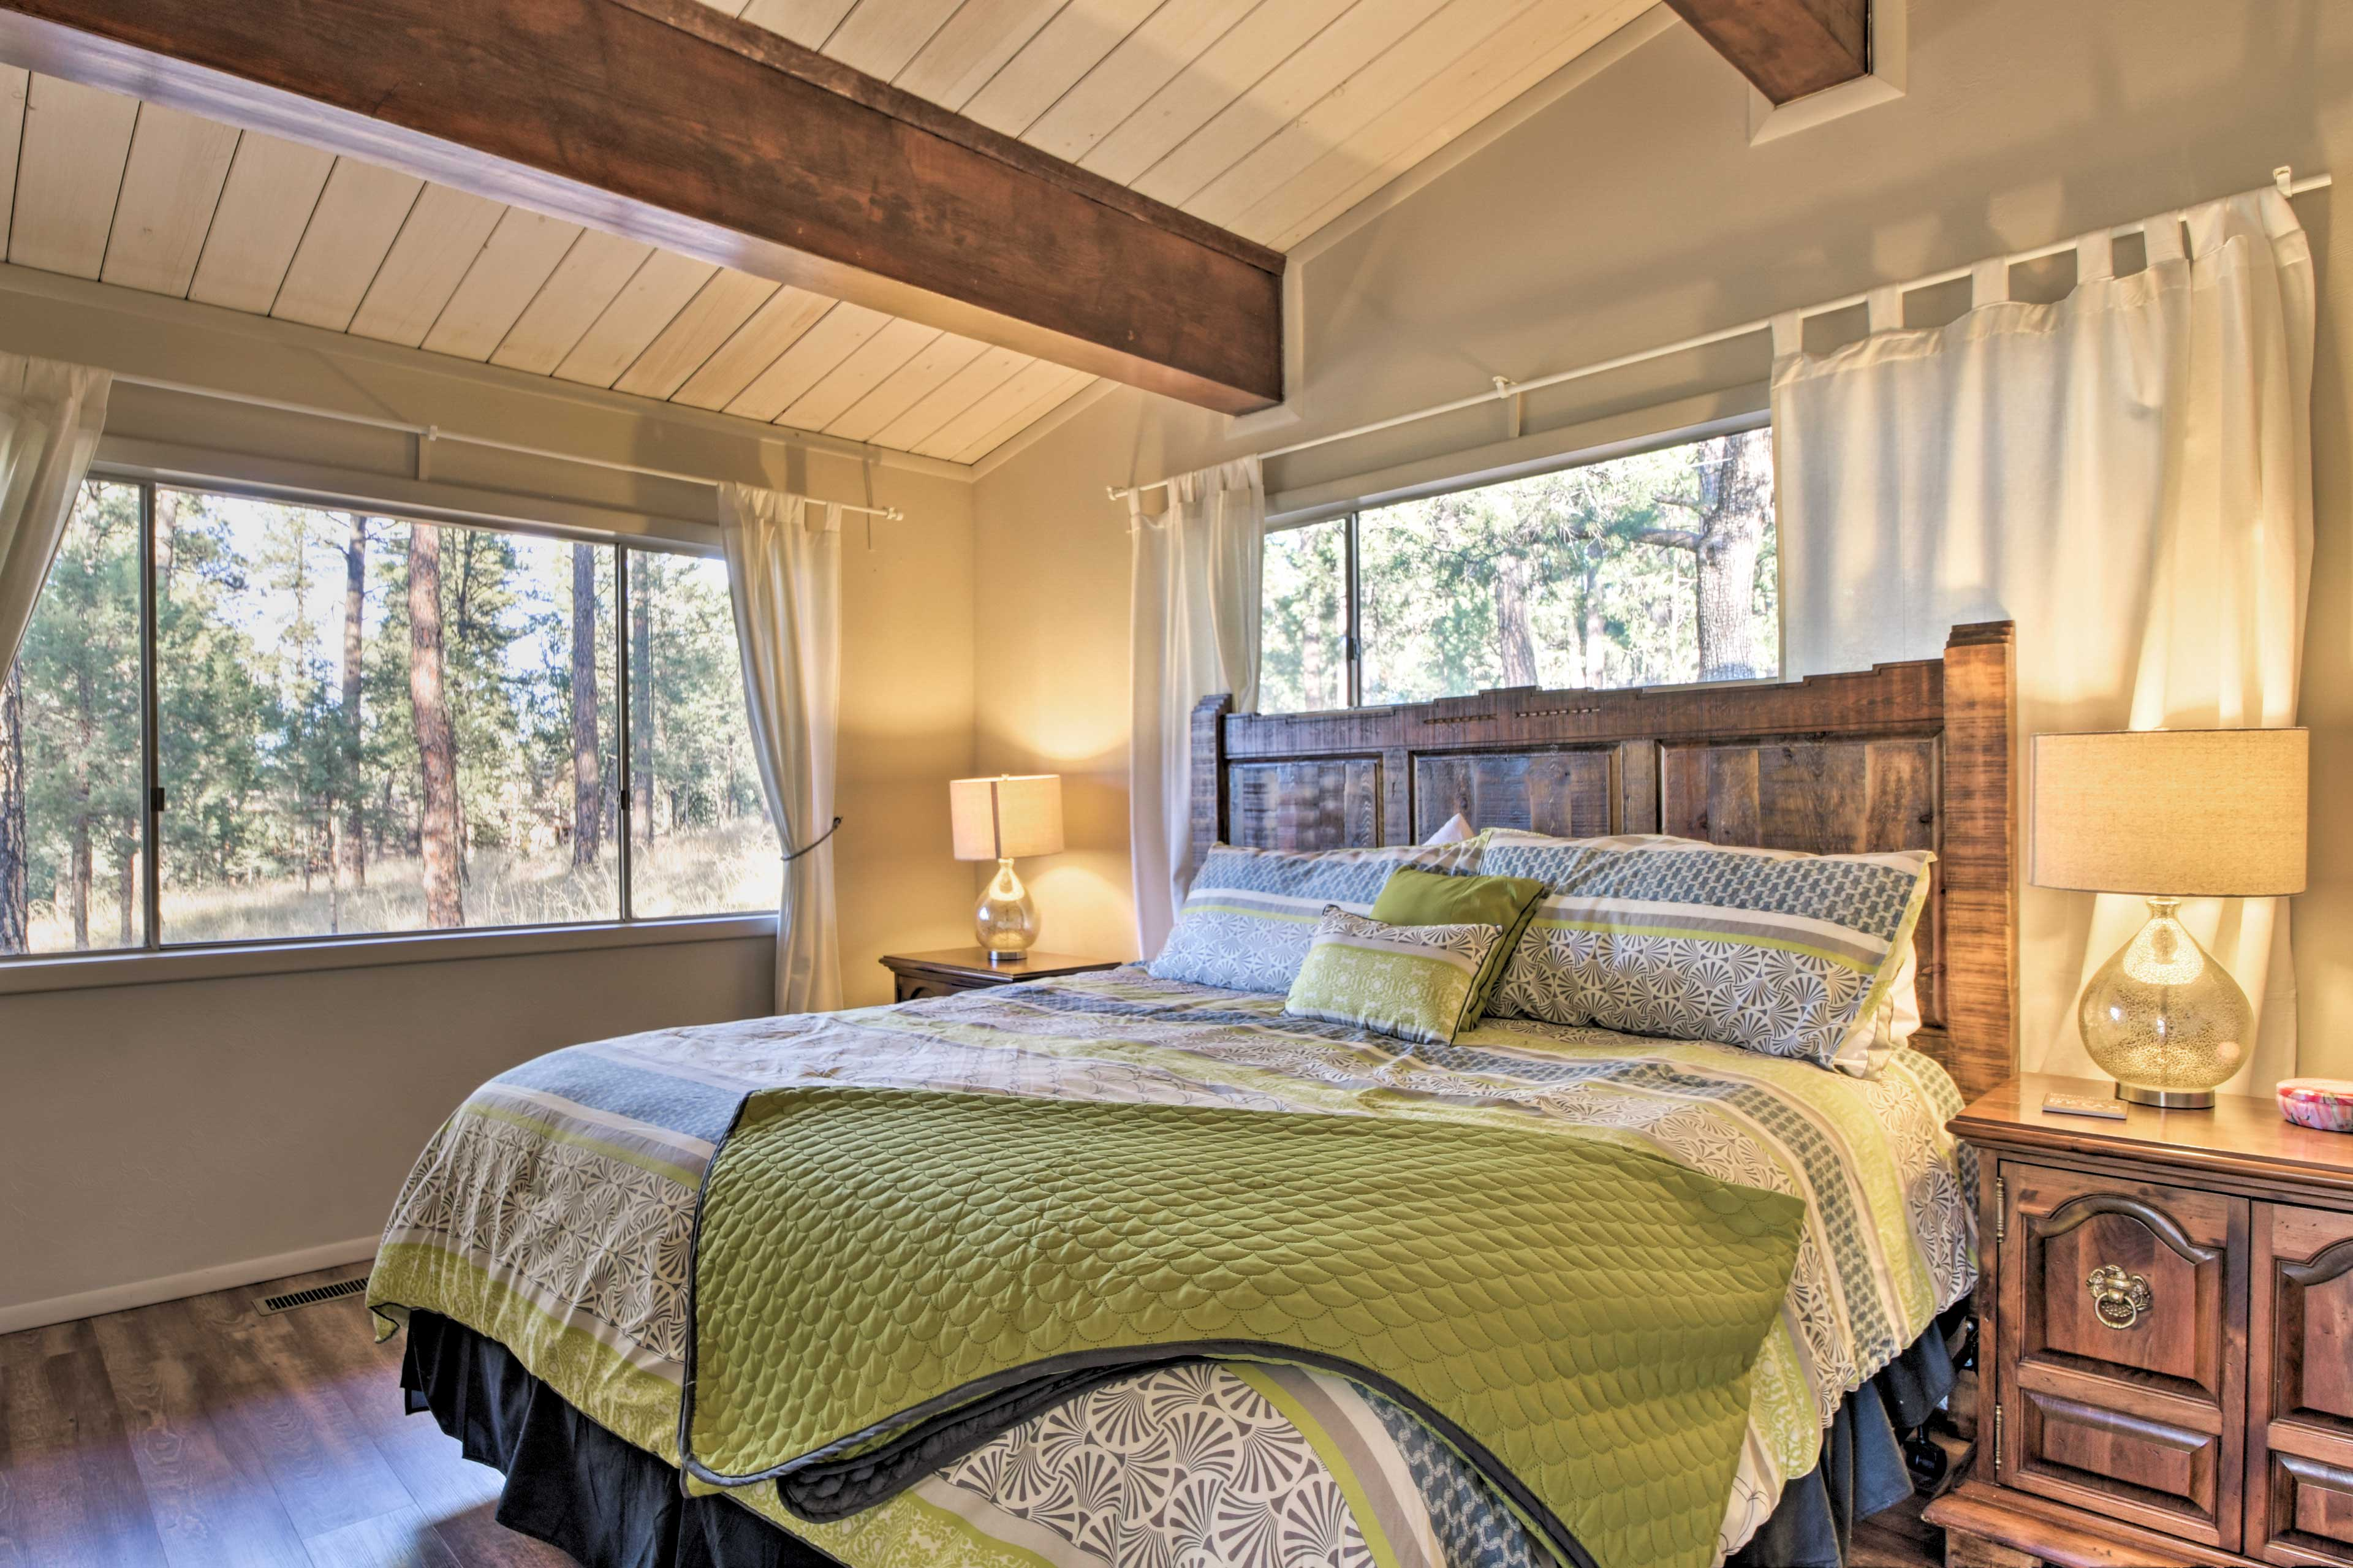 In the second master bedroom, you'll find a plush king bed!